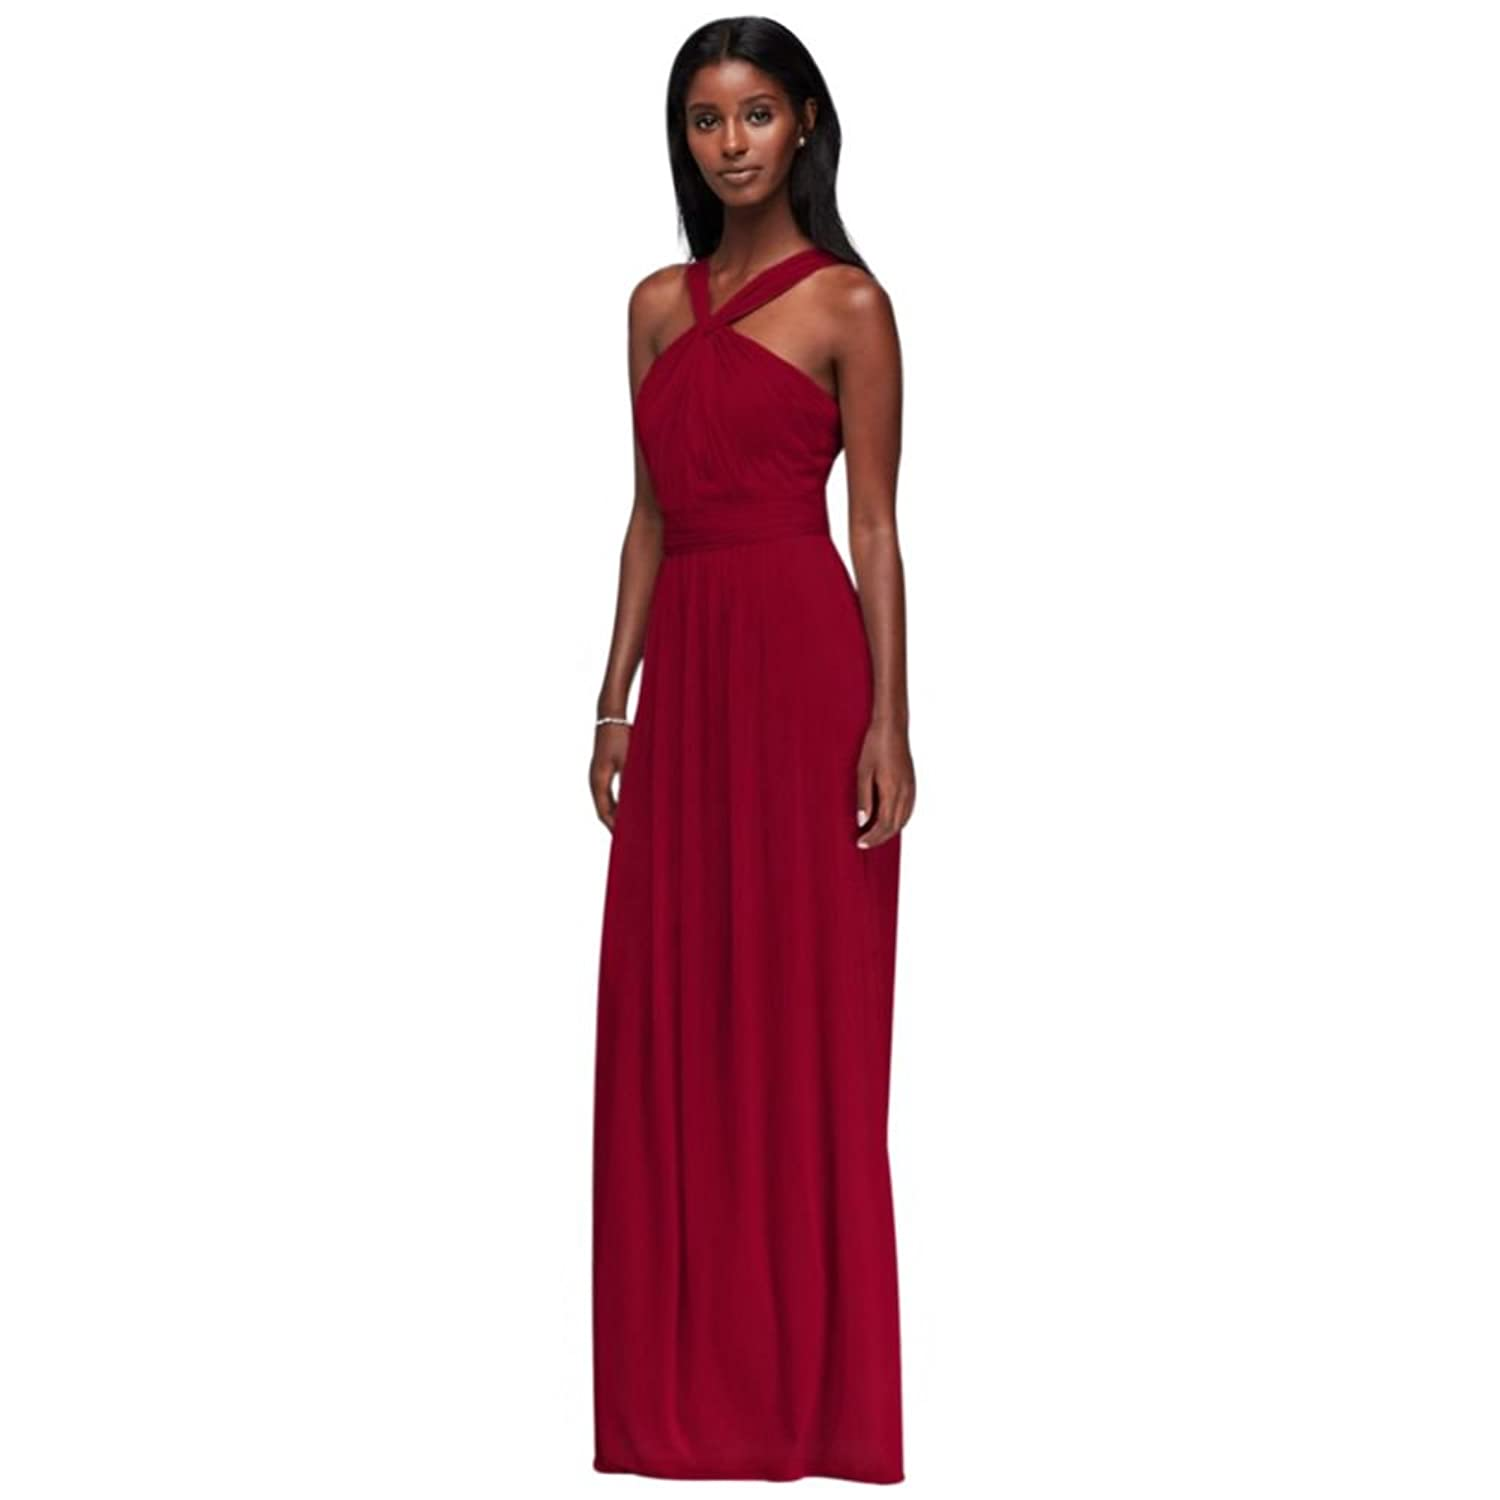 Davids bridal structured mikado strapless long bridesmaid dress davids bridal y neck long mesh bridesmaid dress style w11173 ombrellifo Images